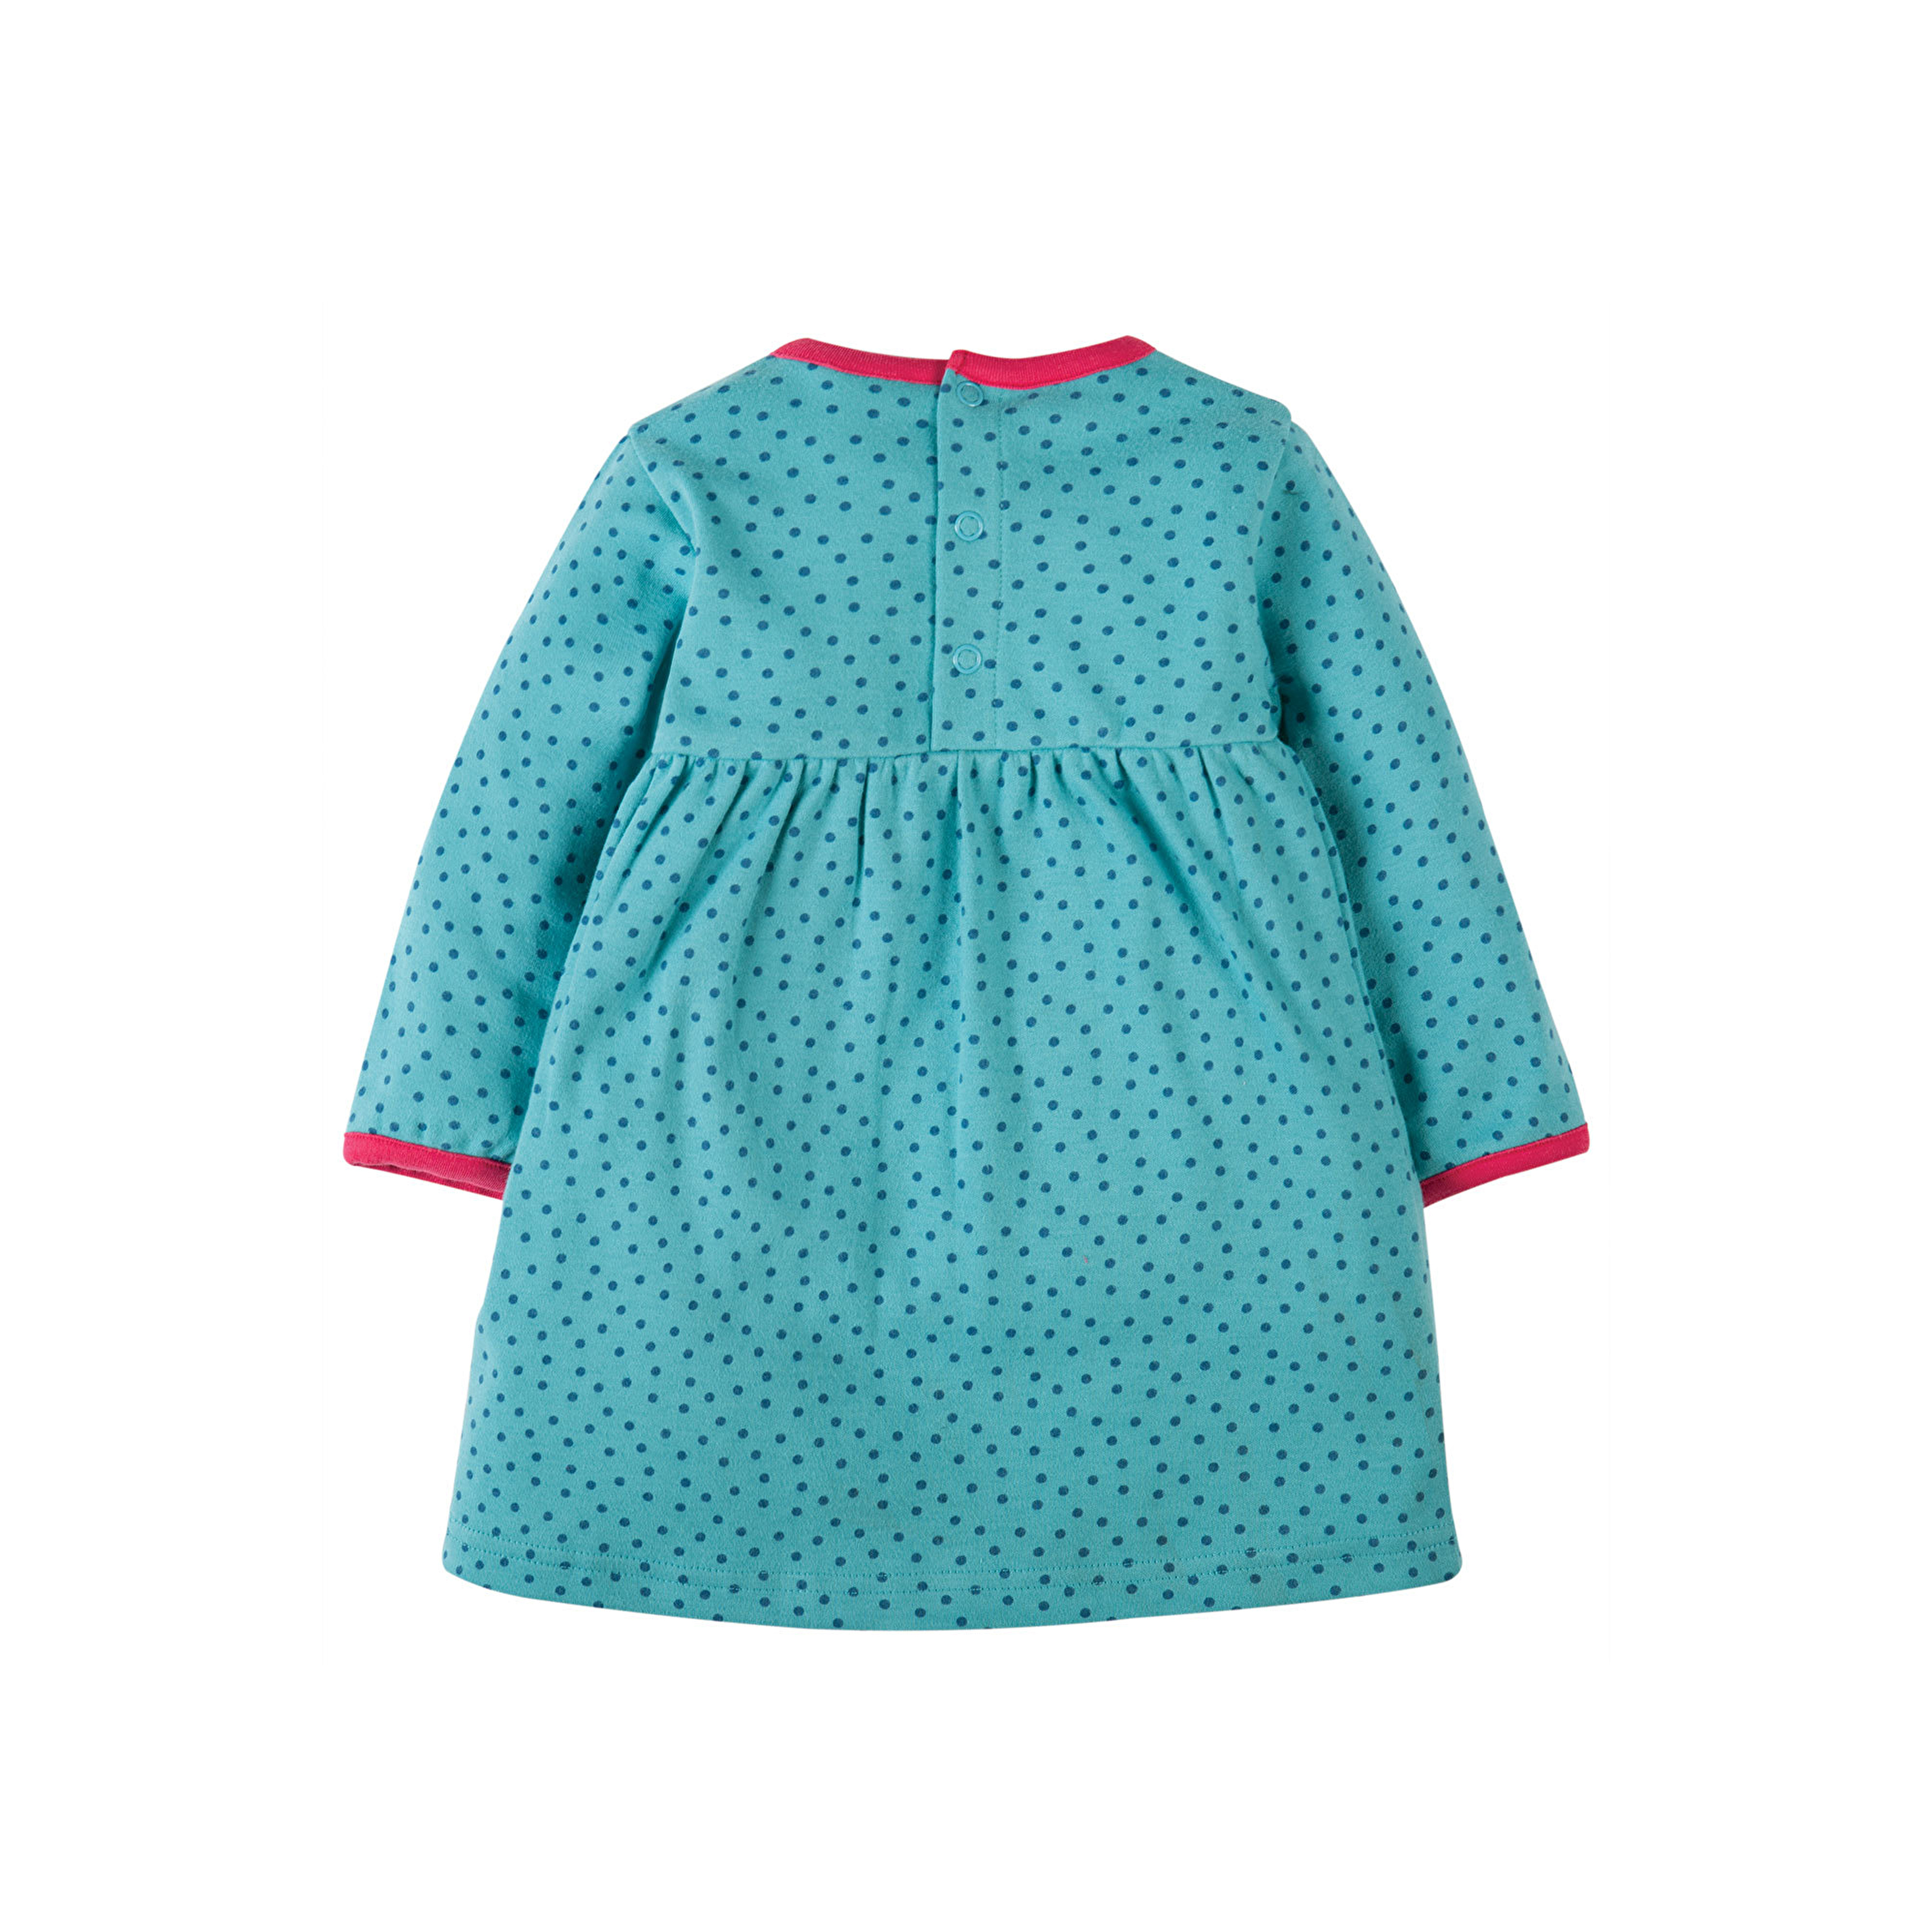 Organic Baby Gifts Ireland : Dolcie dress zebra baby gifts clothes